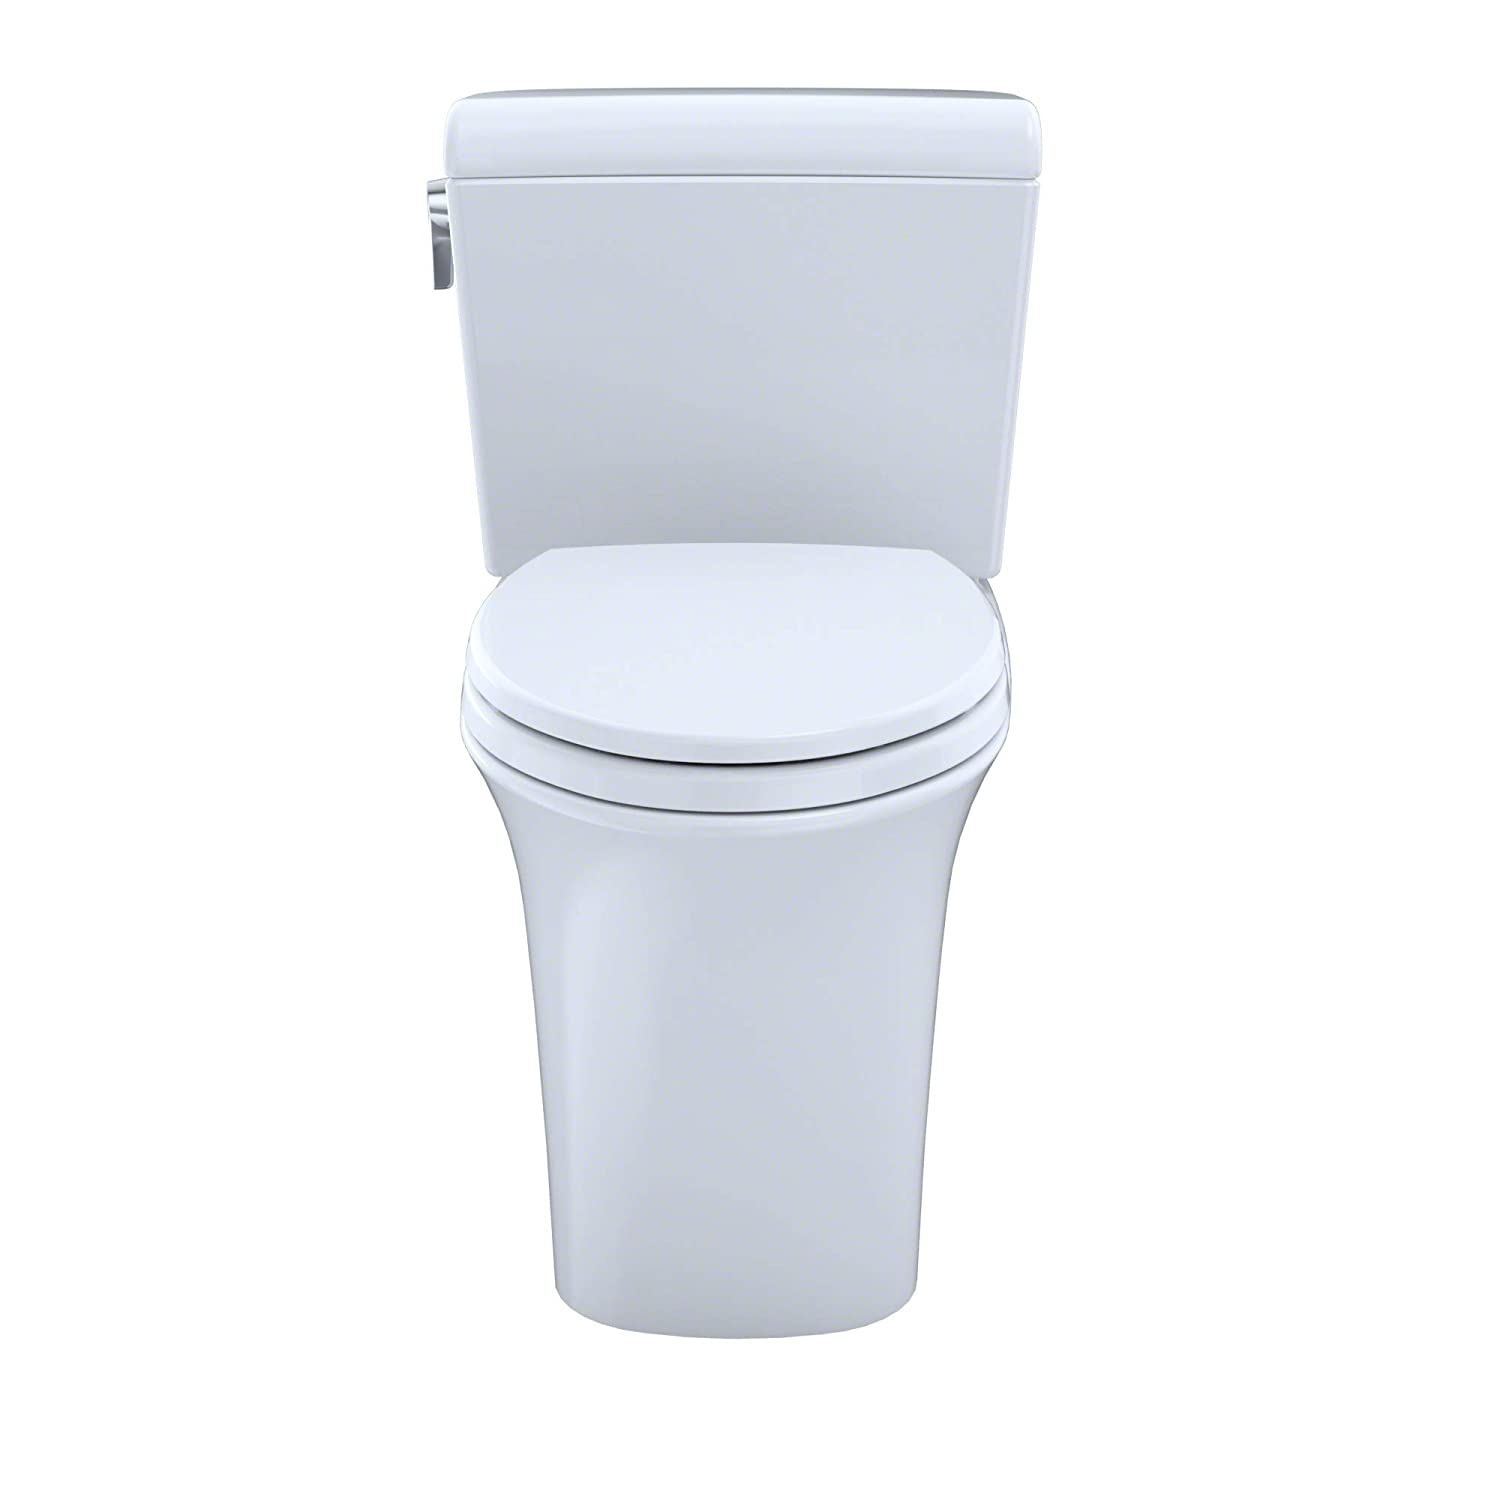 Toto CST484CEMFG#01 1.28GPF/0.9-Gpf Maris Closed Coupled Toilet with ...